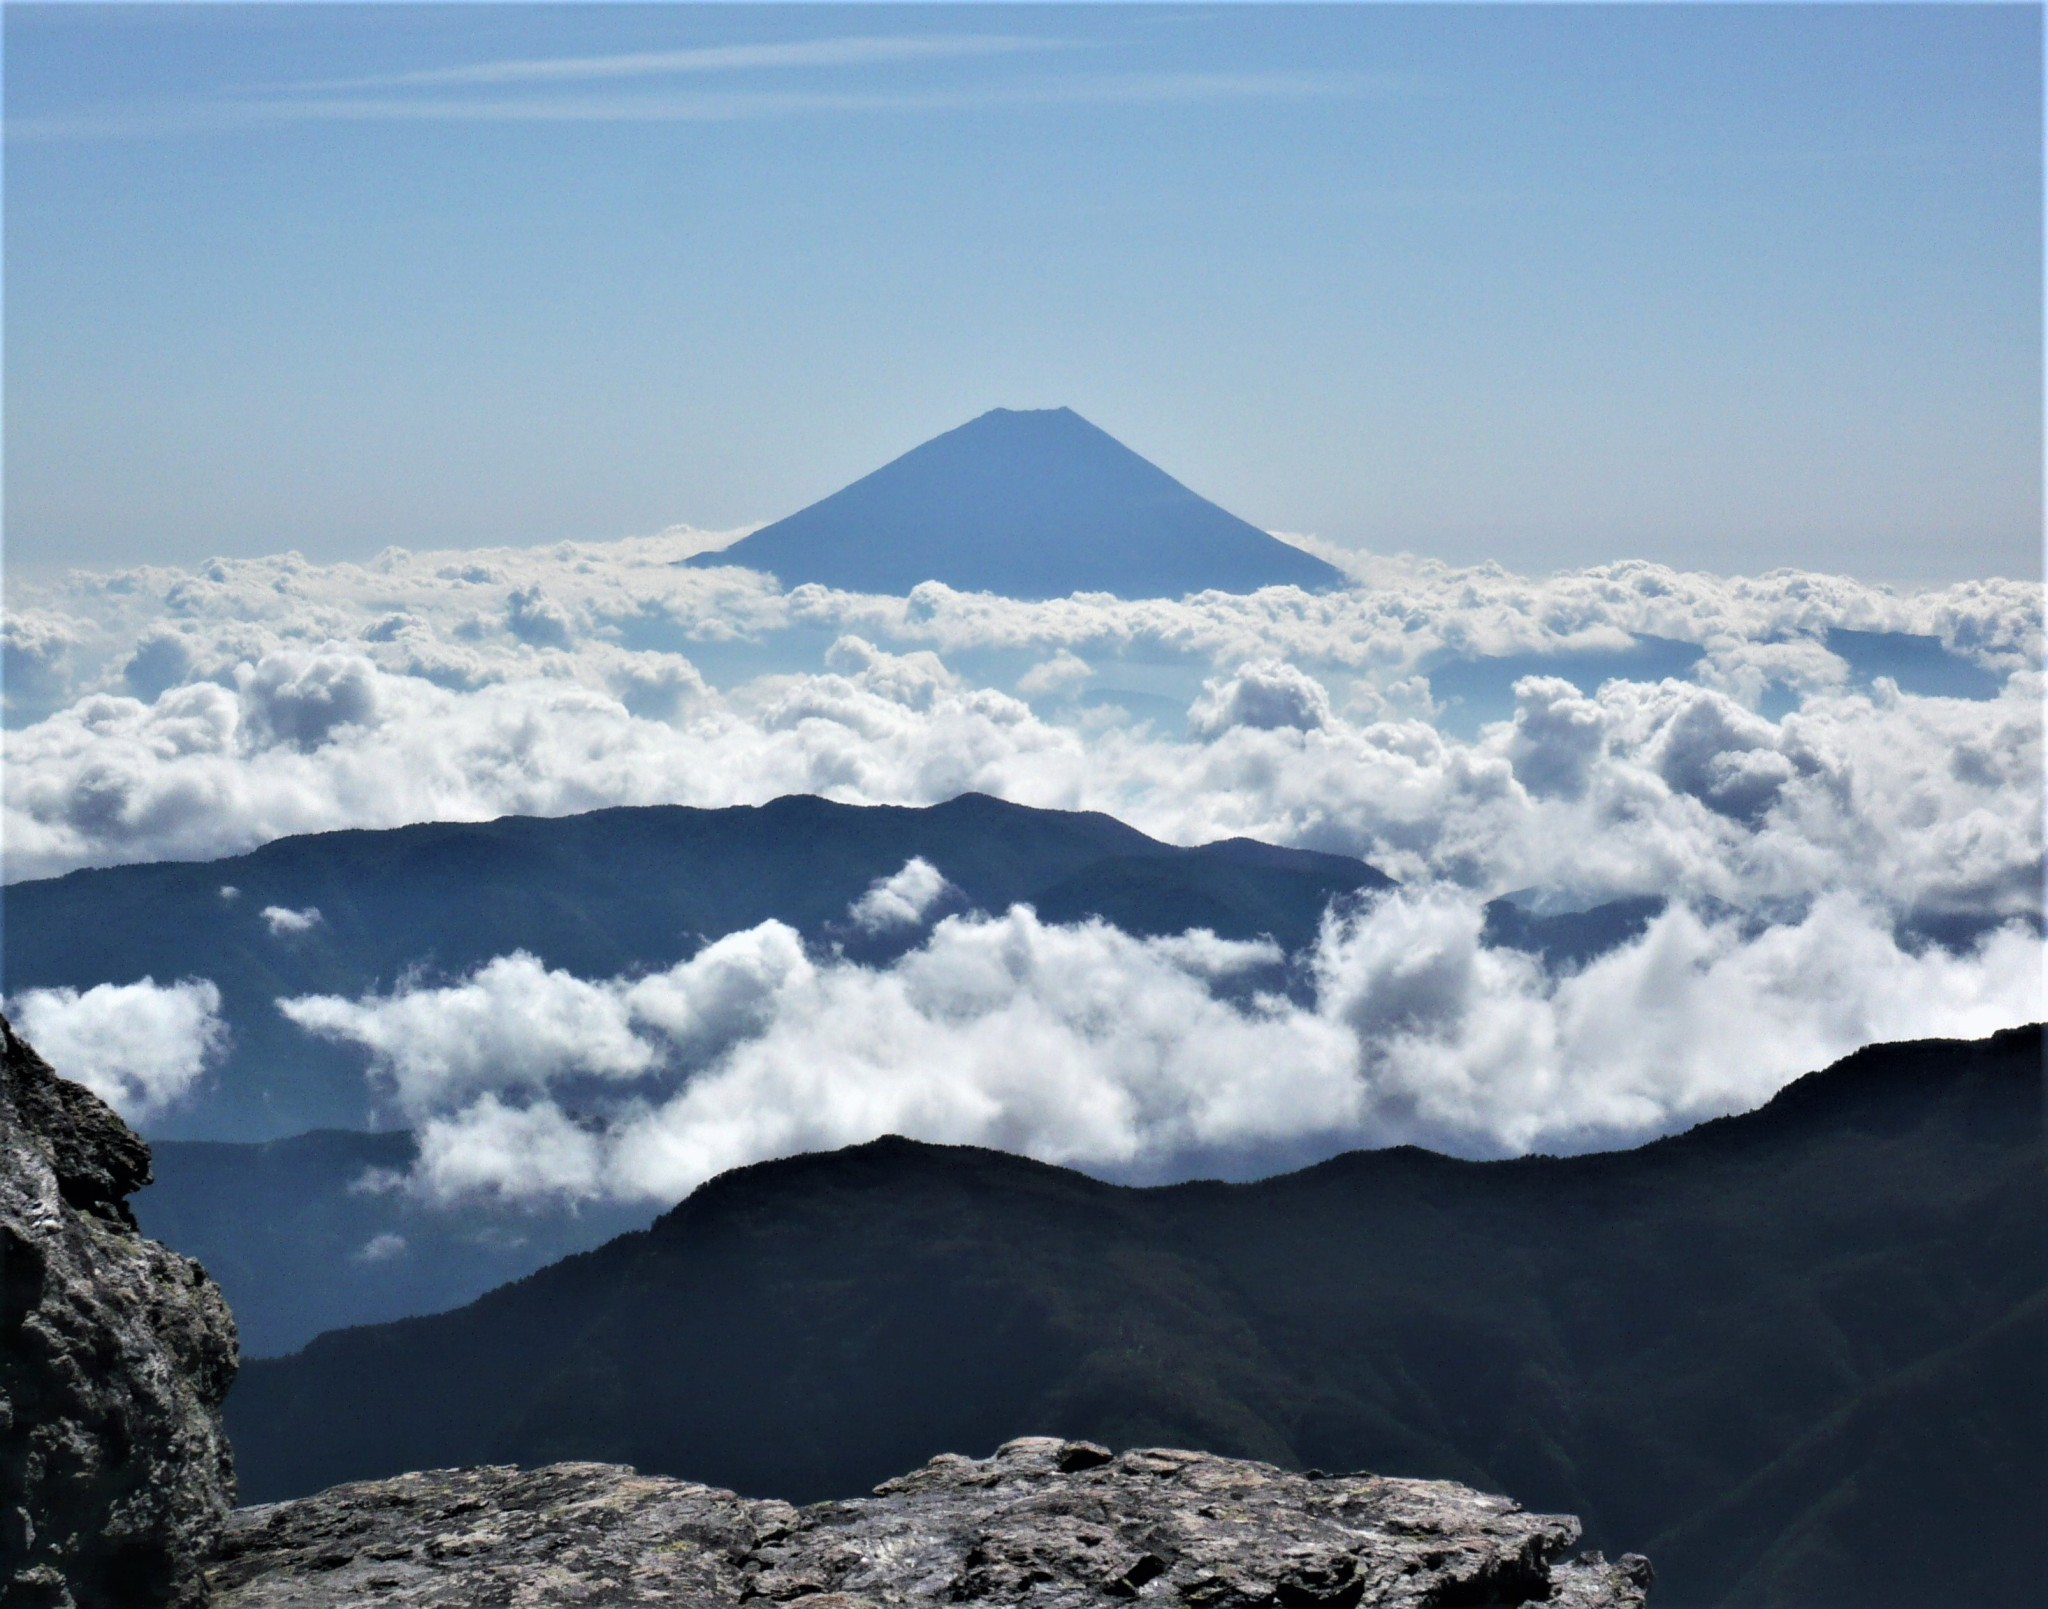 Mount Fuji rising out of a sea of white fluffy clouds as seen from the summit of Mount Aino in the Japan Alps.